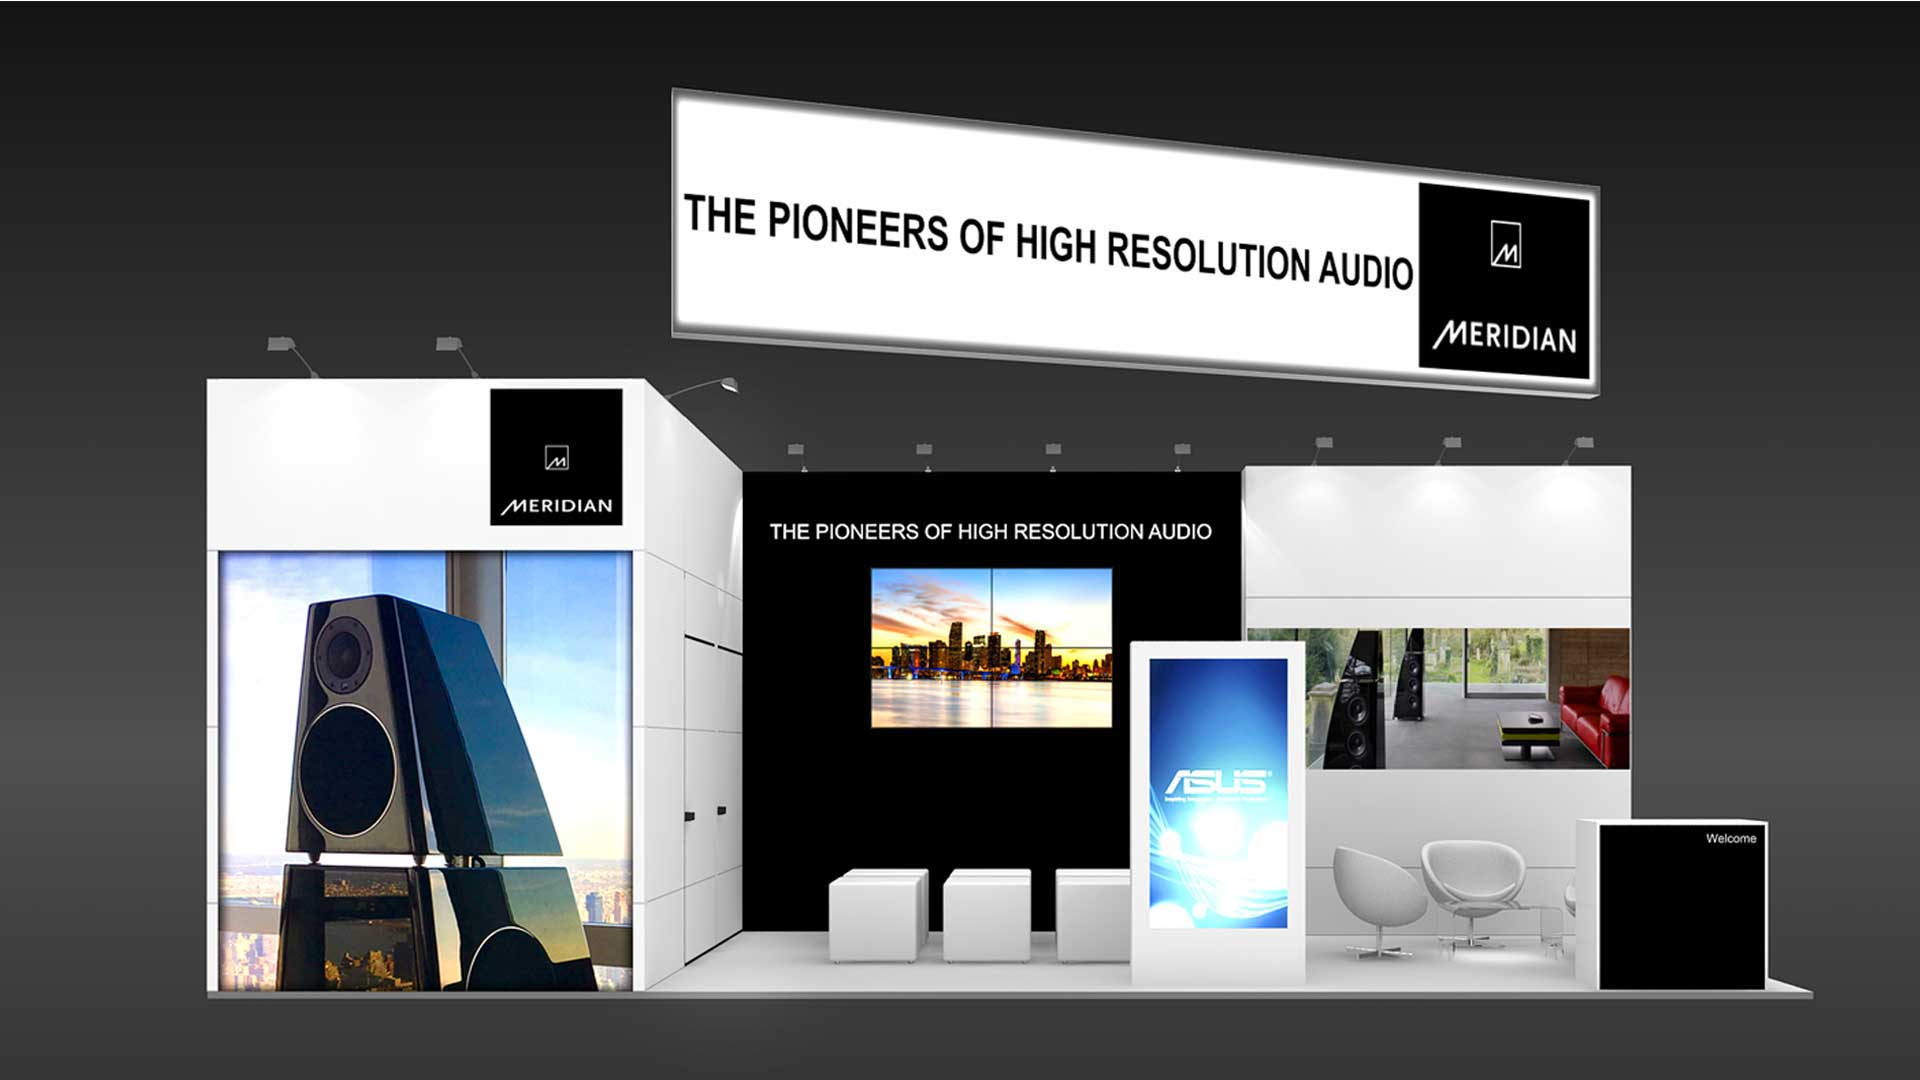 creative ideas for exhibition stands